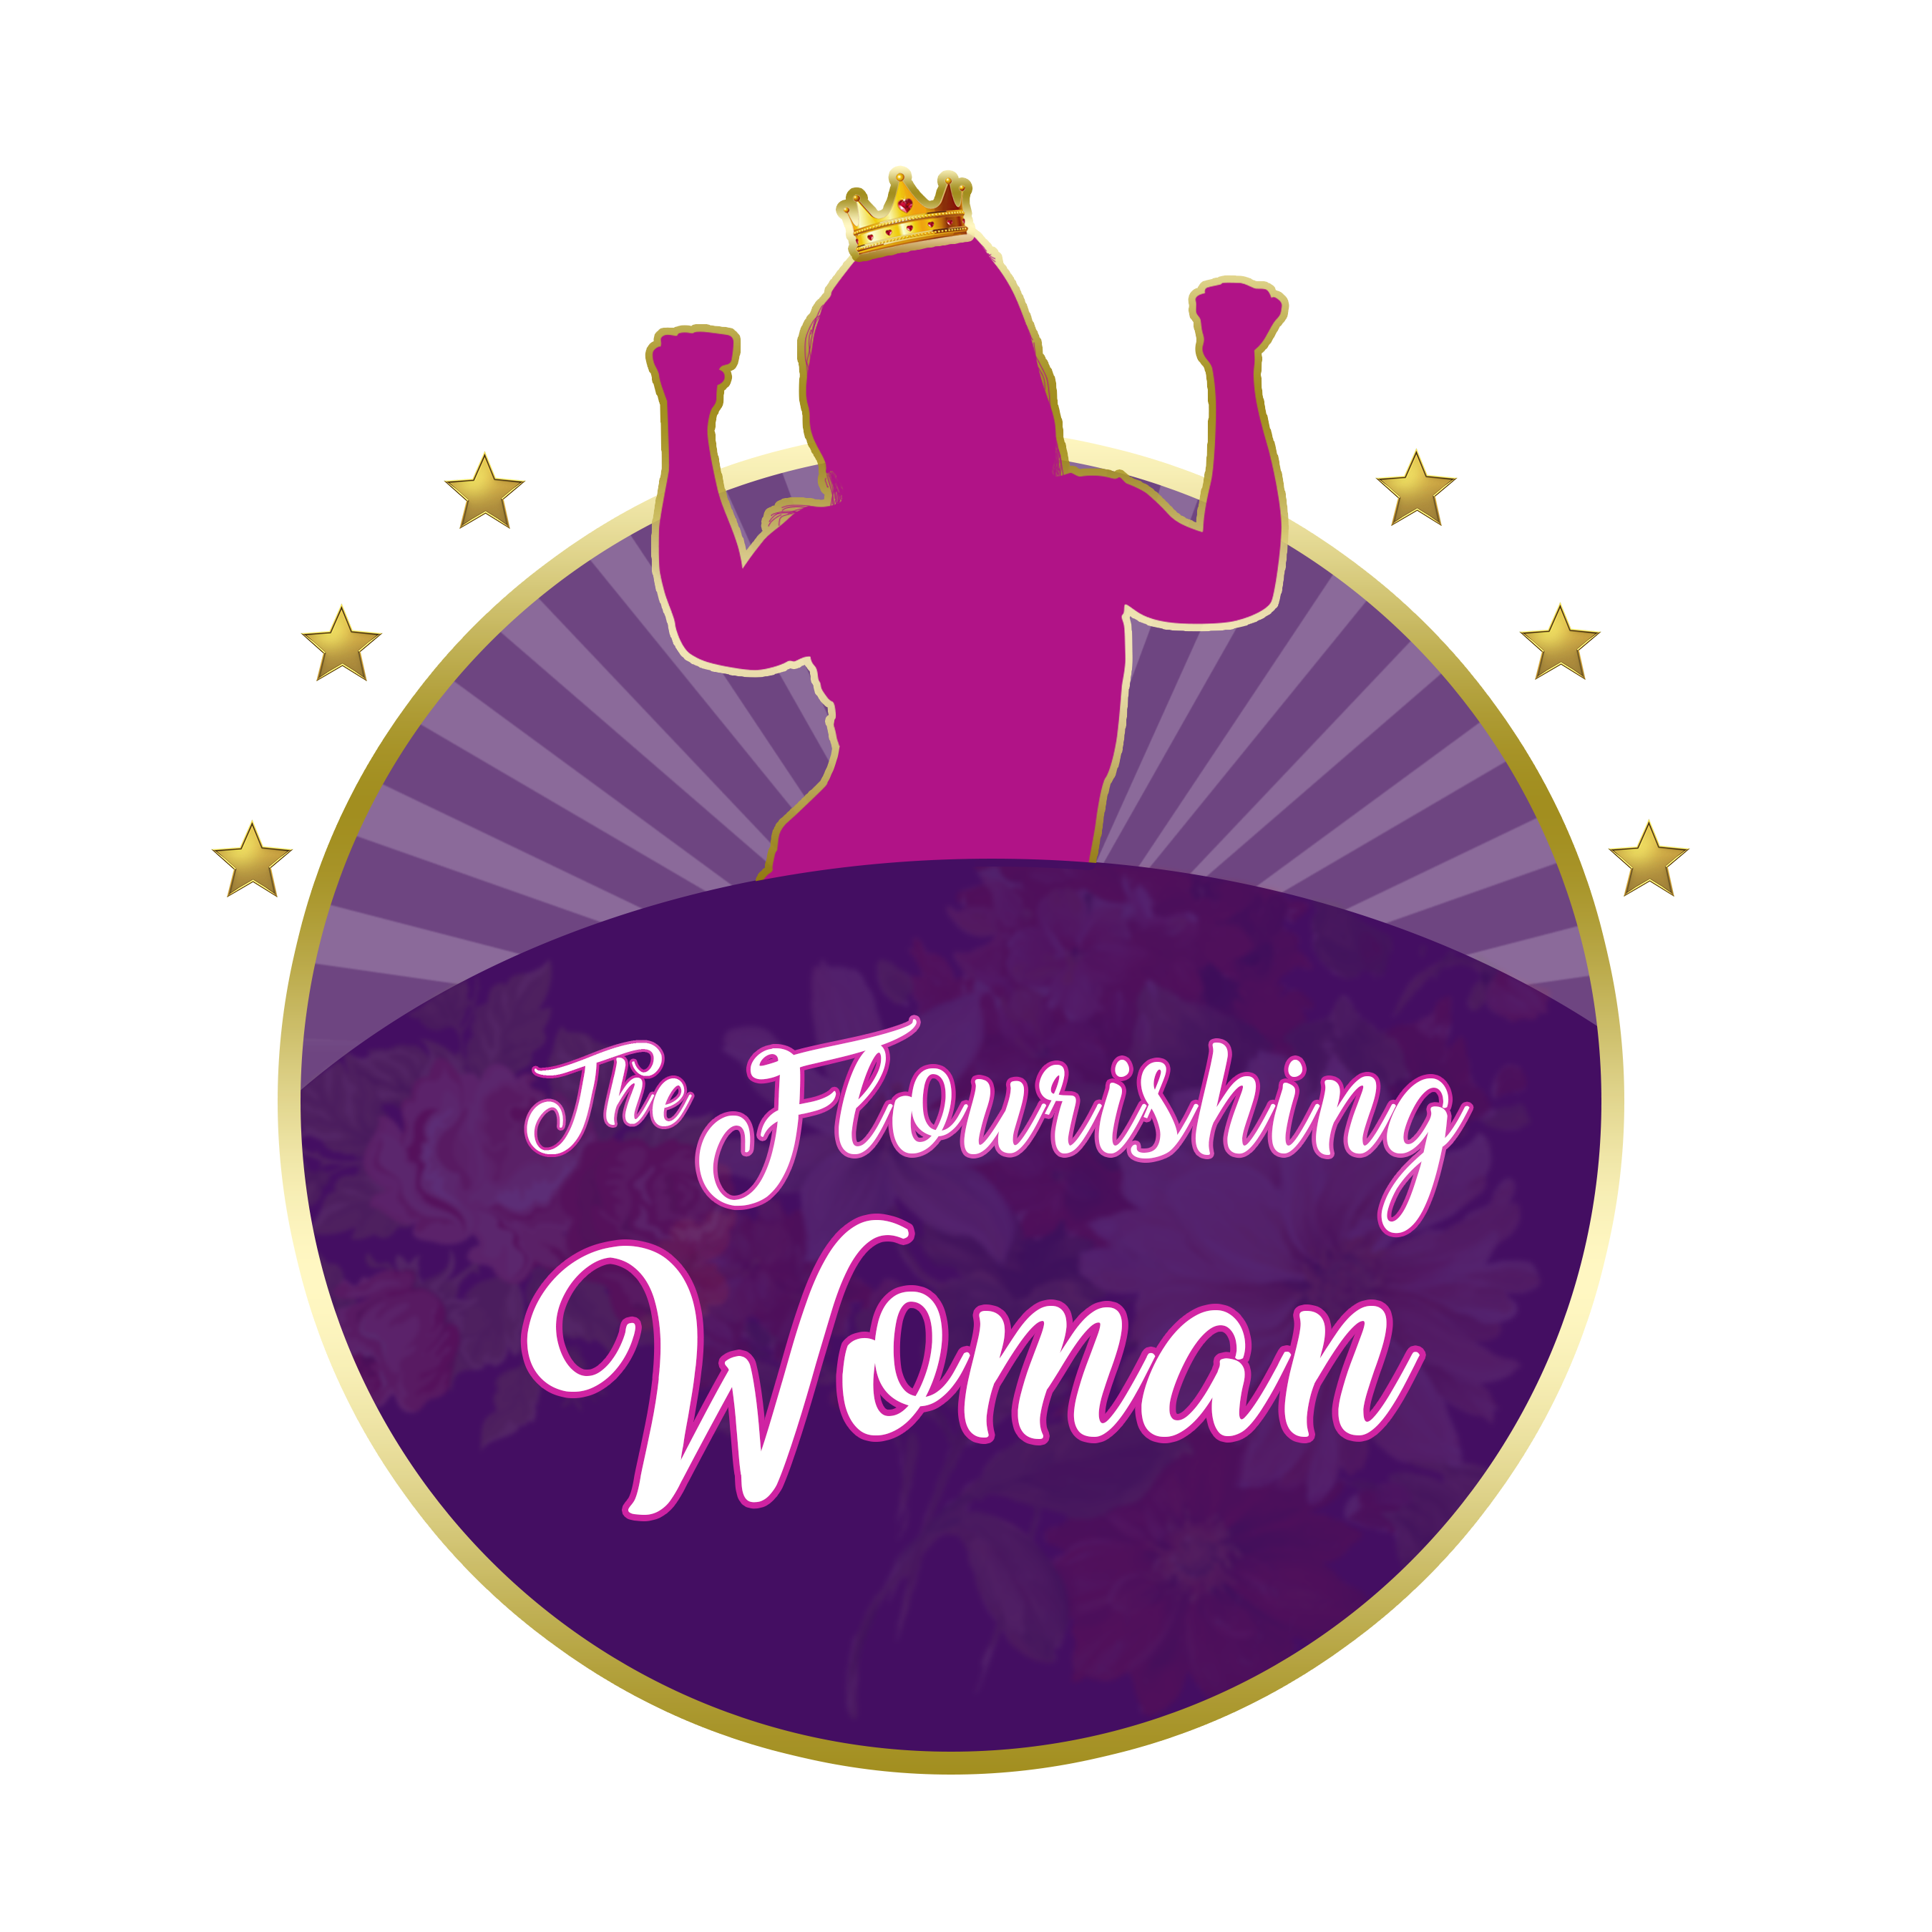 The Flourishing woman logo 2